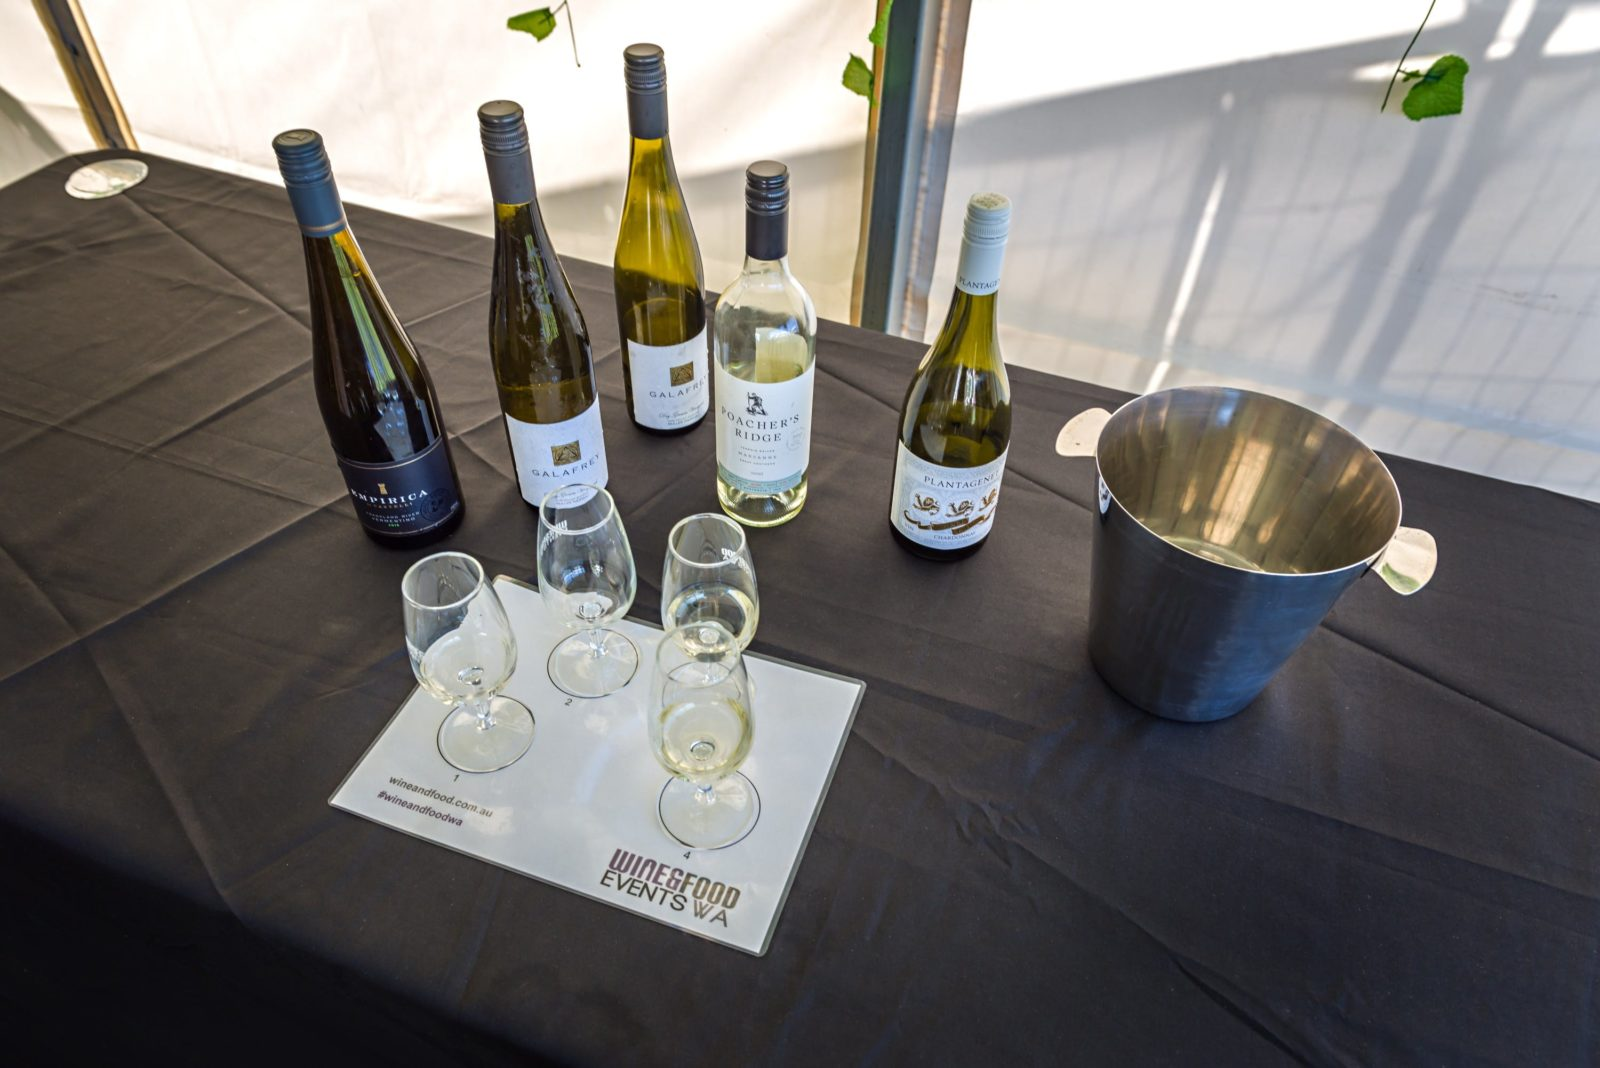 Albany Food & Wine Festival presented by Mt Barker Chicken, Albany, Western Australia